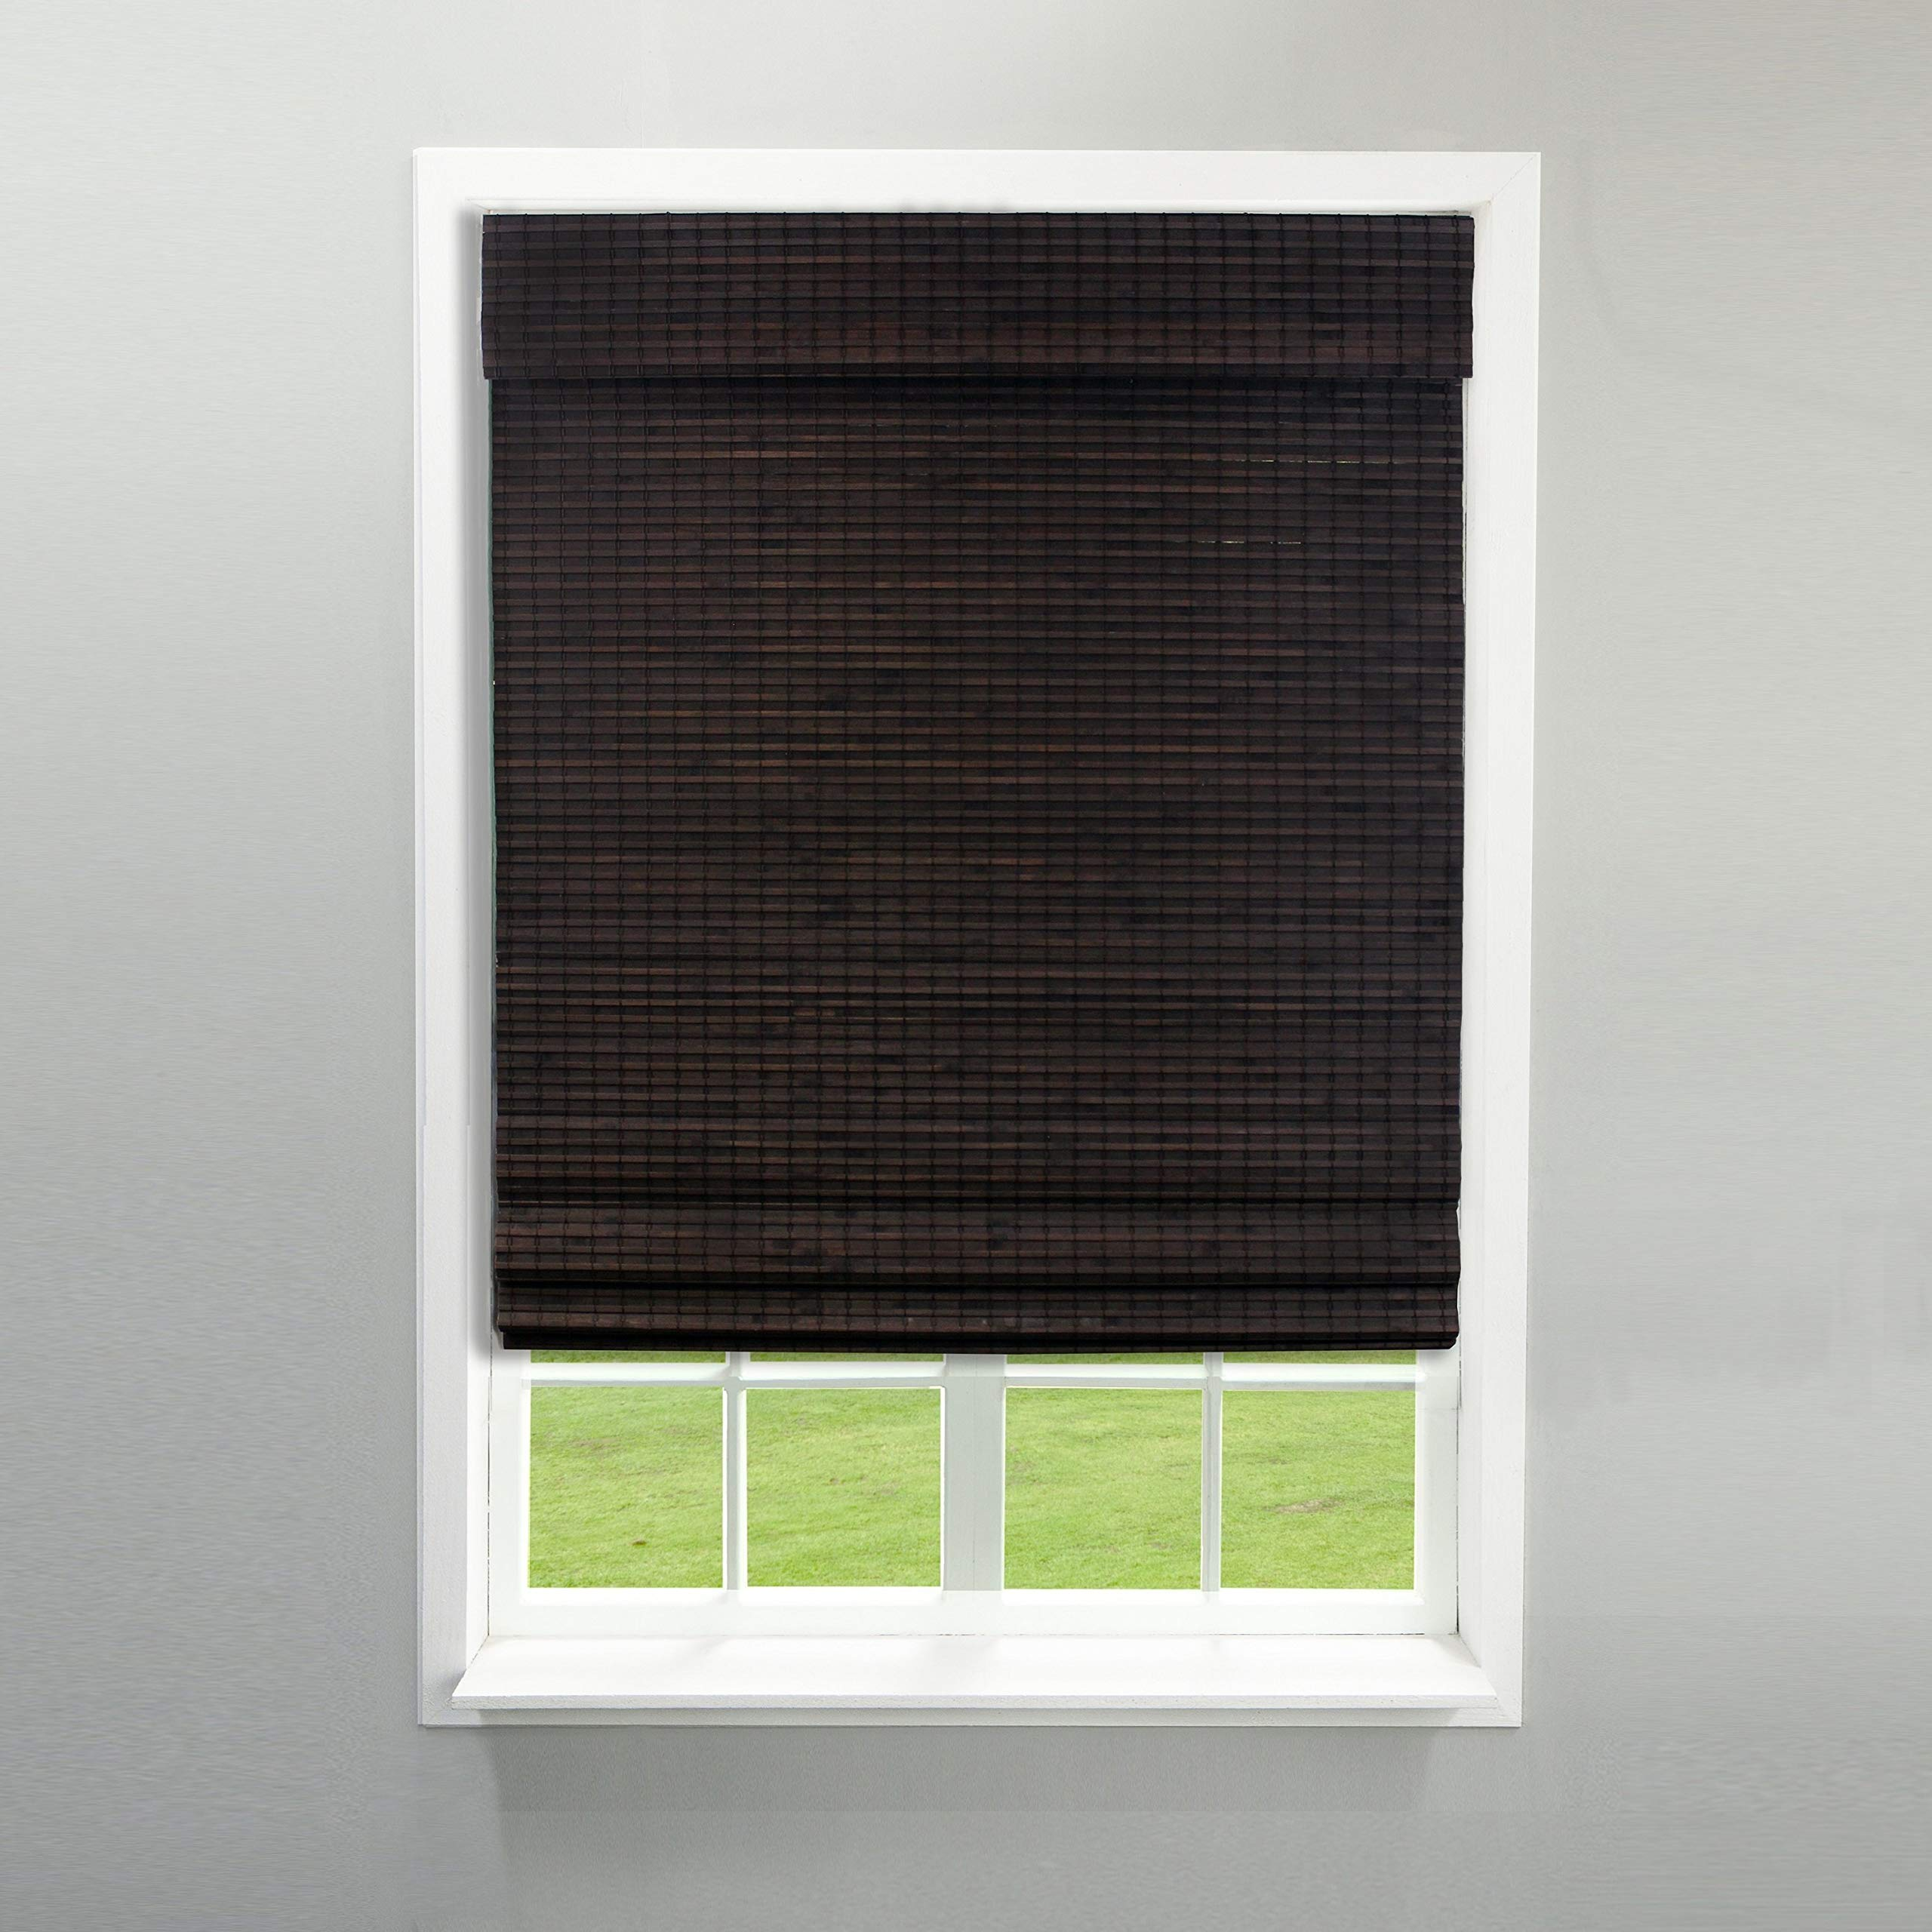 MISC 25.5 X 64 Espresso Brown Bamboo Cordless Roman Shade Flatstick Natural Wood Pull Down Blinds Rustic Light Filtering Privacy Weave Window Shades, 5ft 4in Long by MISC